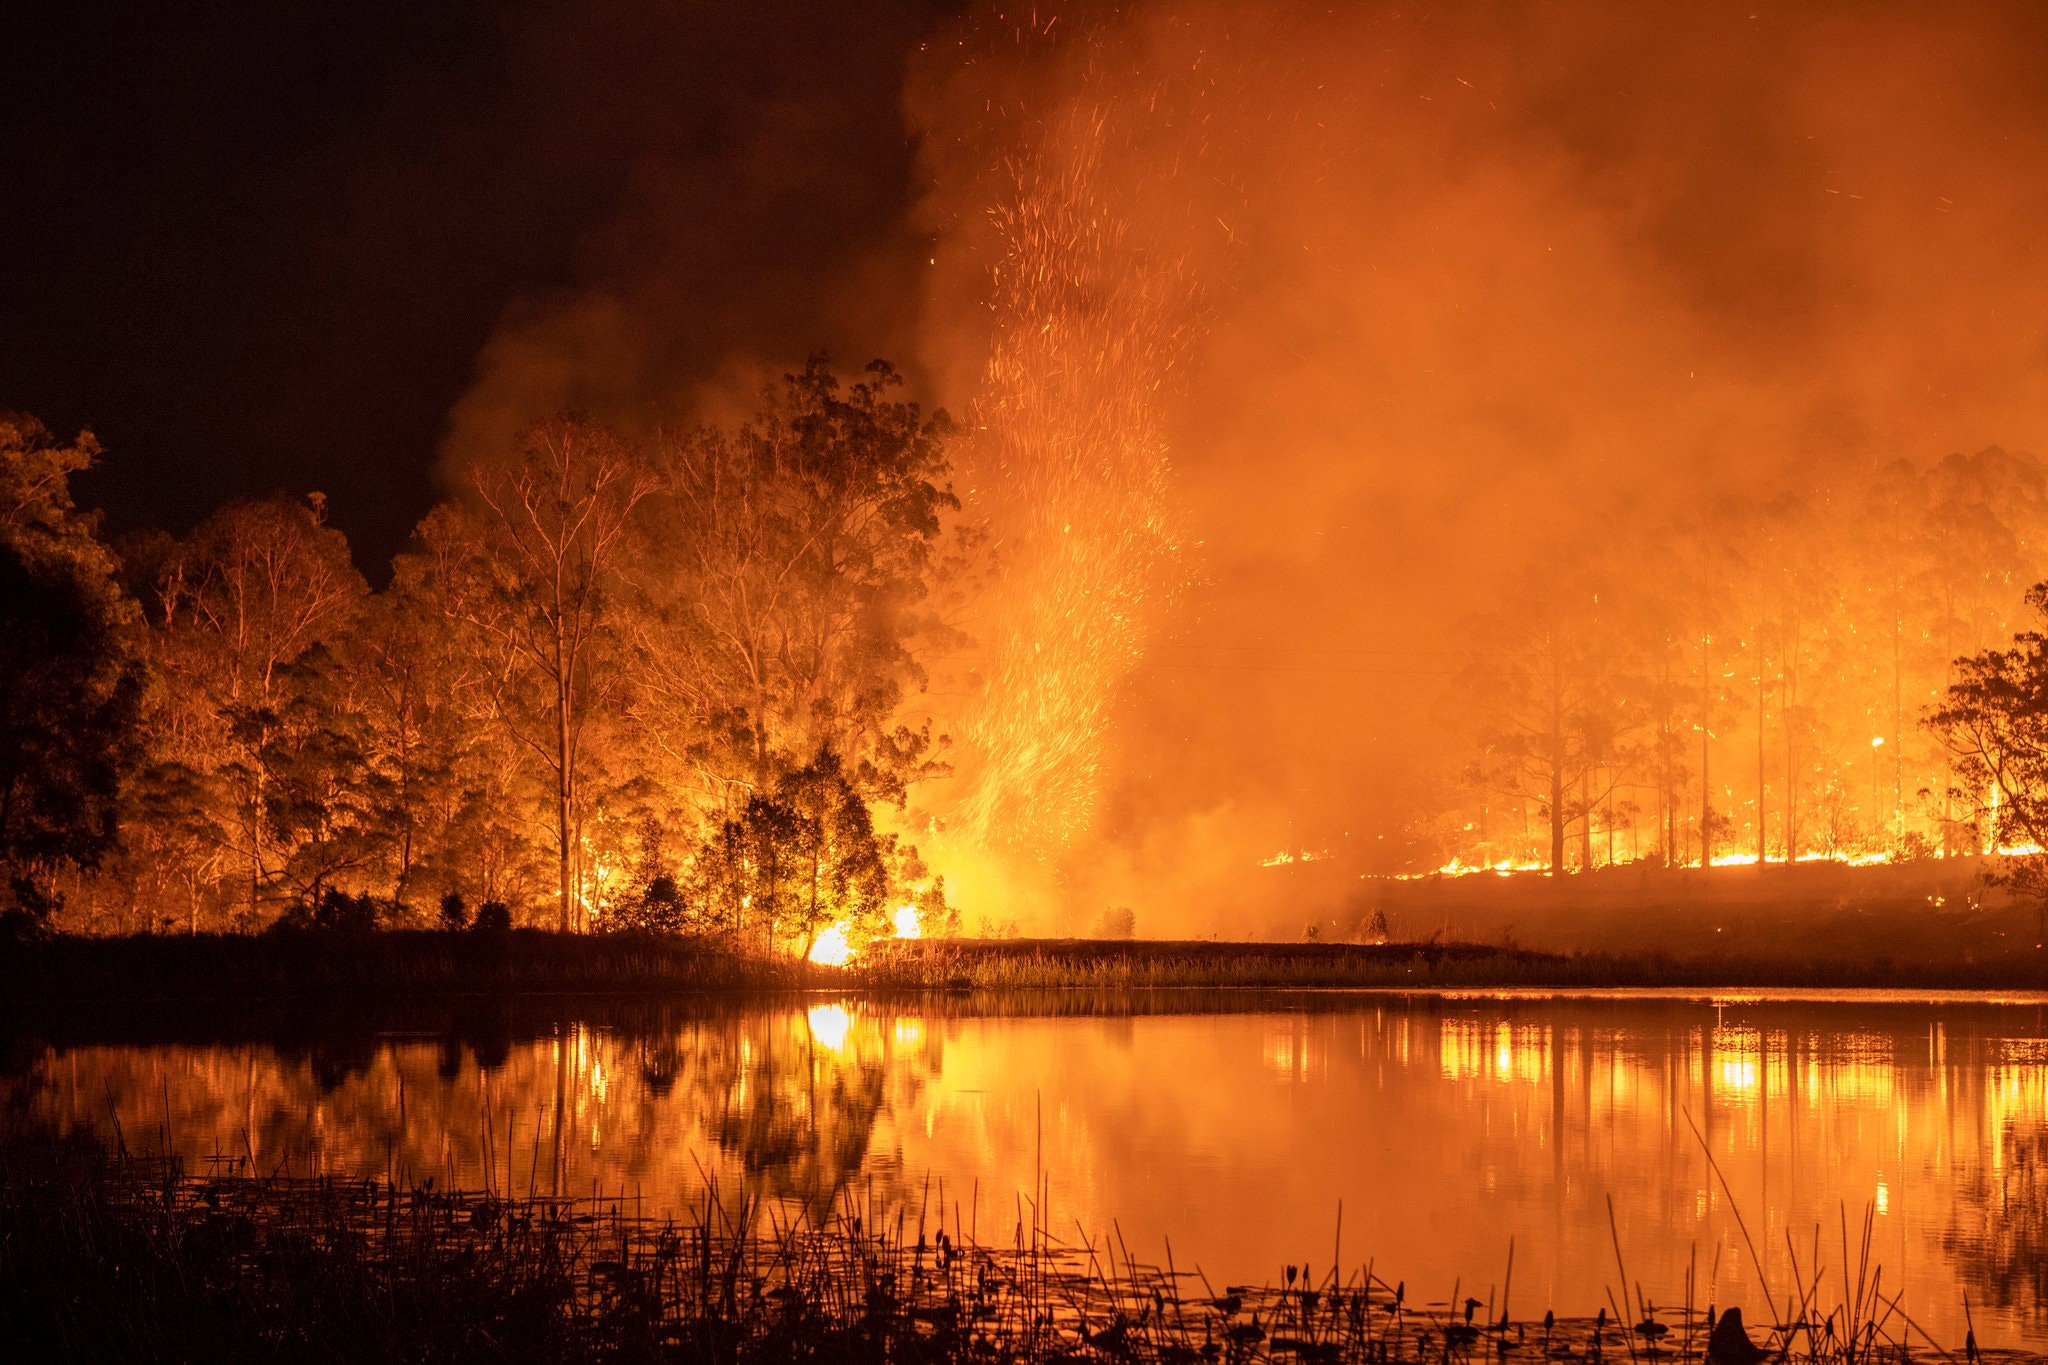 An out-of-control fire in Hillville New South Wales on 12 November 2019 / Matthew Abbott New York Times